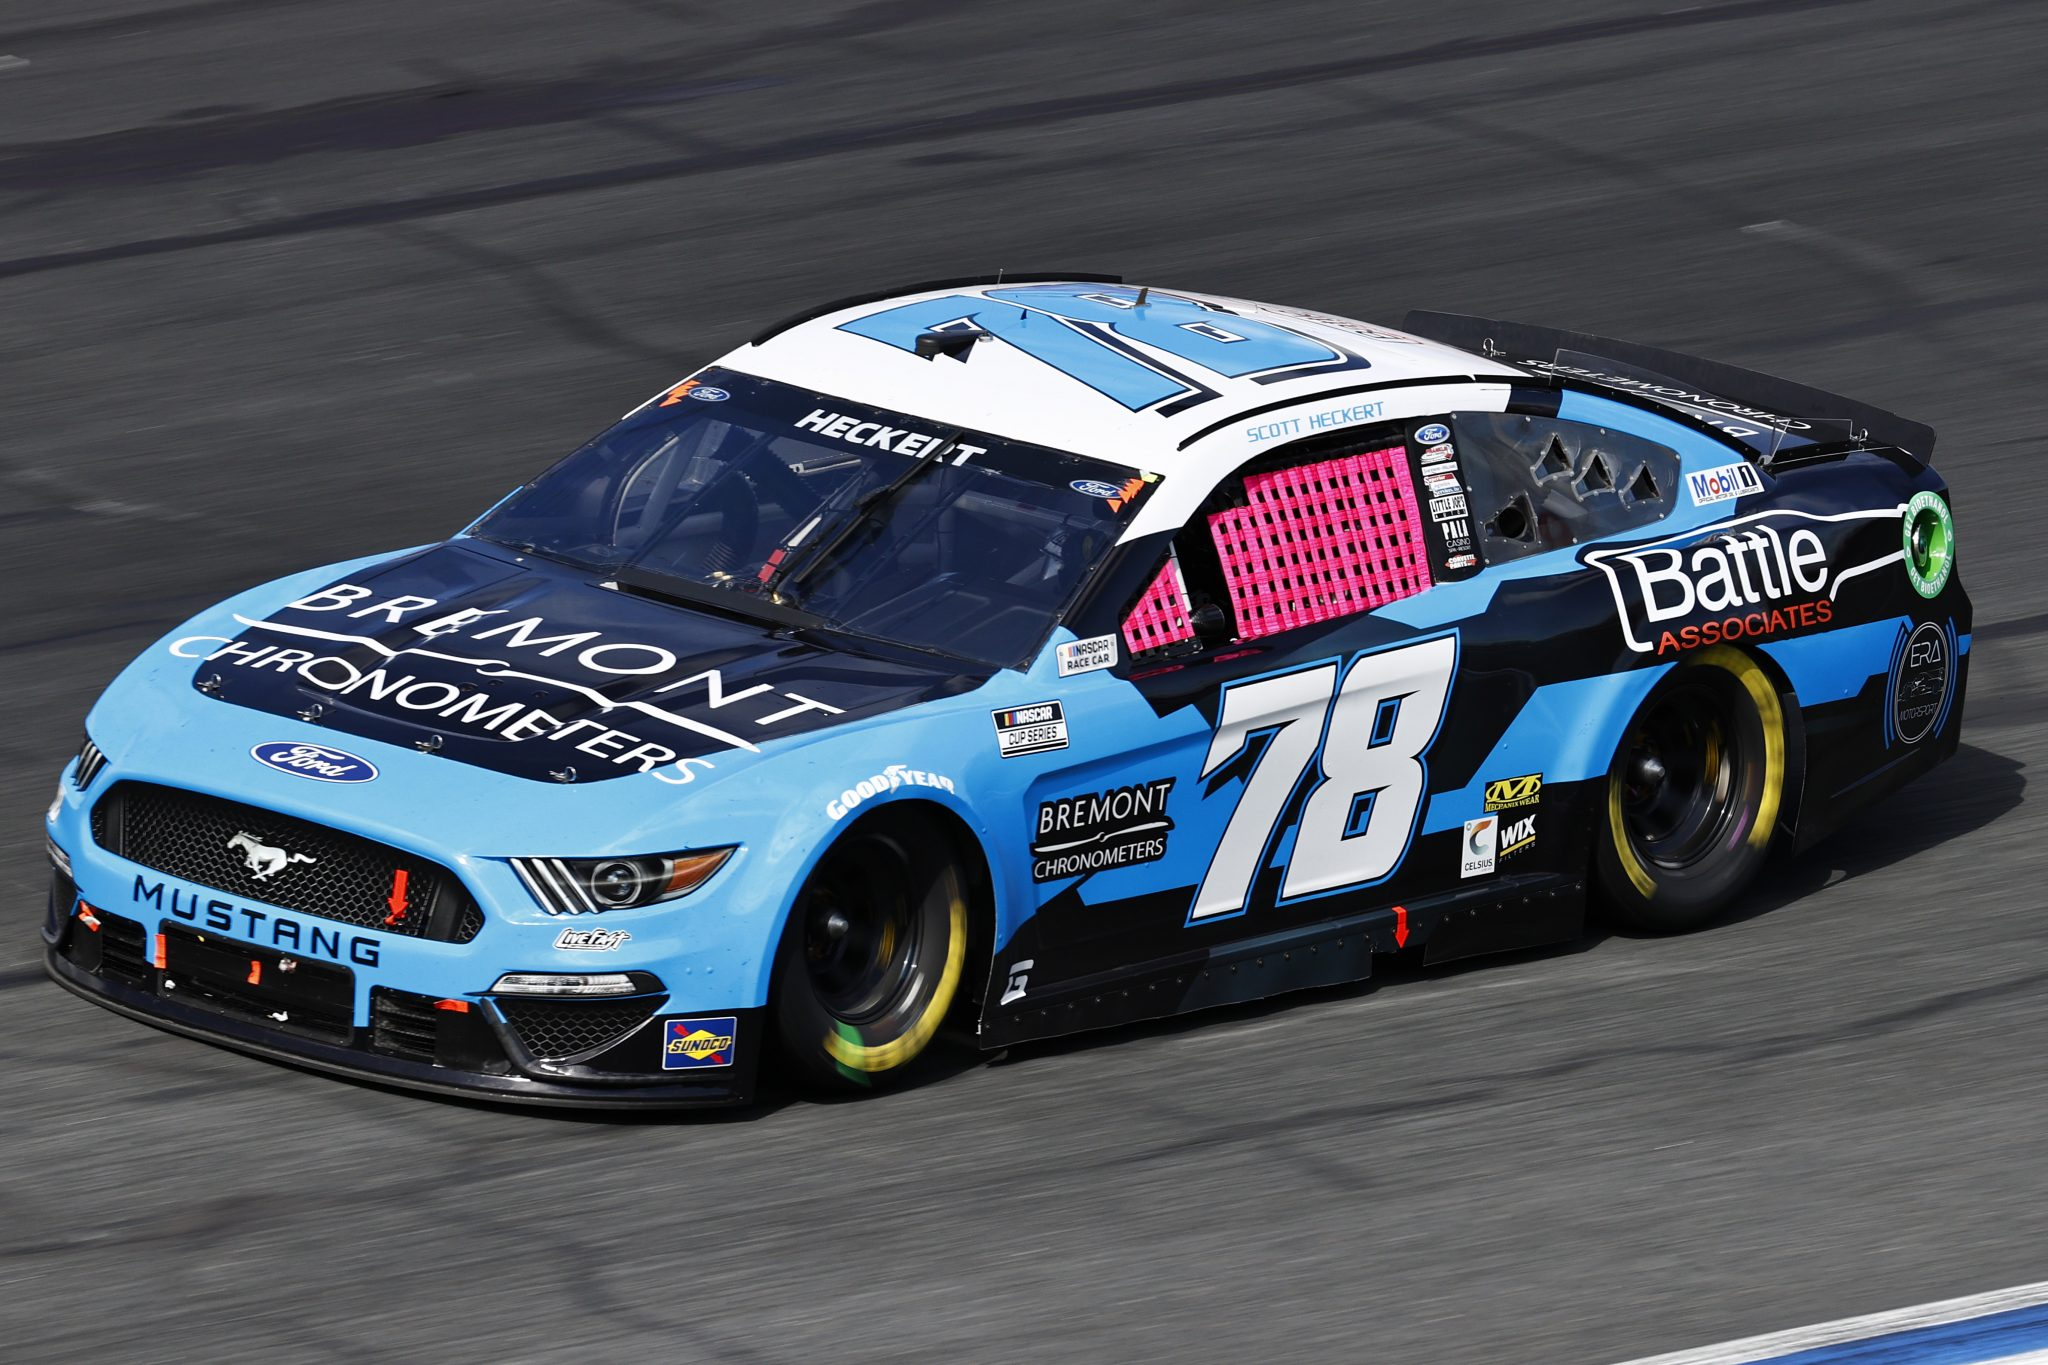 CONCORD, NORTH CAROLINA - OCTOBER 10: Scott Heckert, driver of the #78 Bremont Chronometers Ford, drives during the NASCAR Cup Series Bank of America ROVAL 400 at Charlotte Motor Speedway on October 10, 2021 in Concord, North Carolina. (Photo by Jared C. Tilton/Getty Images) | Getty Images